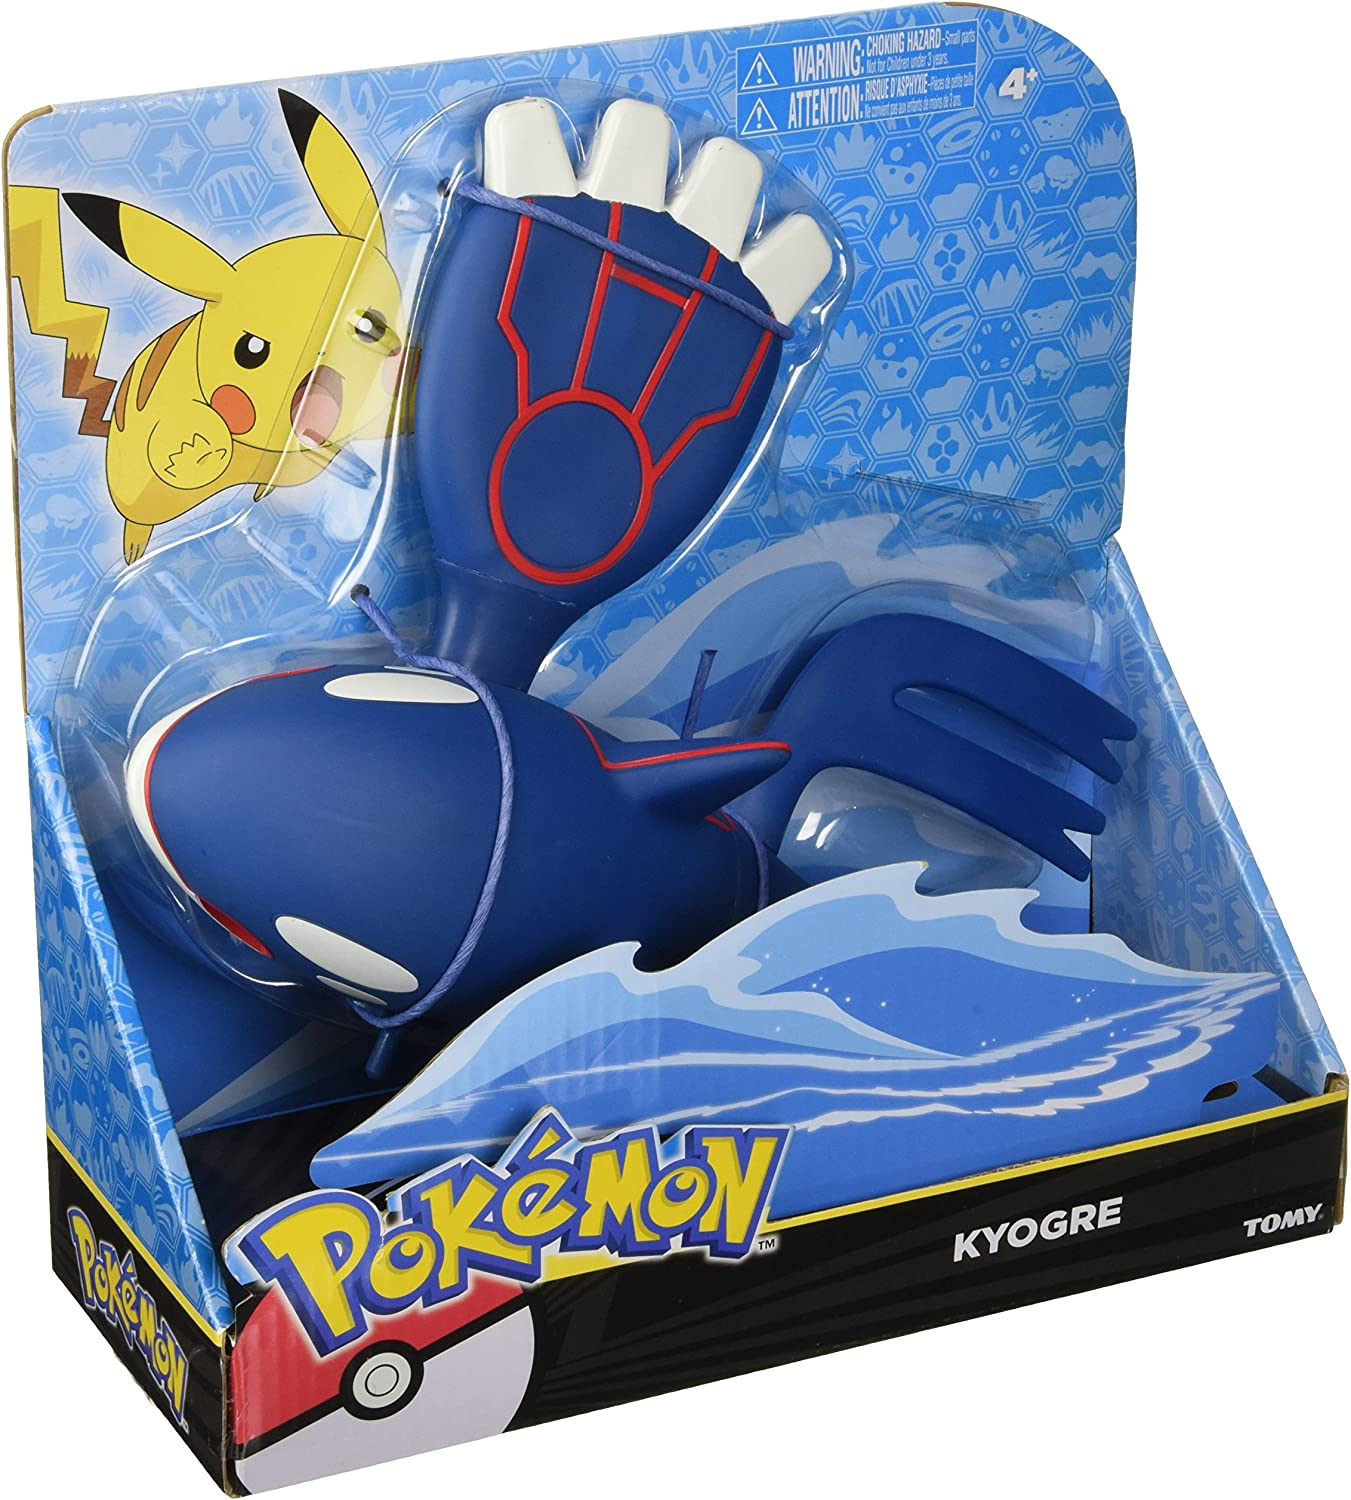 Assorted Figures Pokemon Large 8 Inch Action Figure Toys & Games Play  Figures & Vehicles